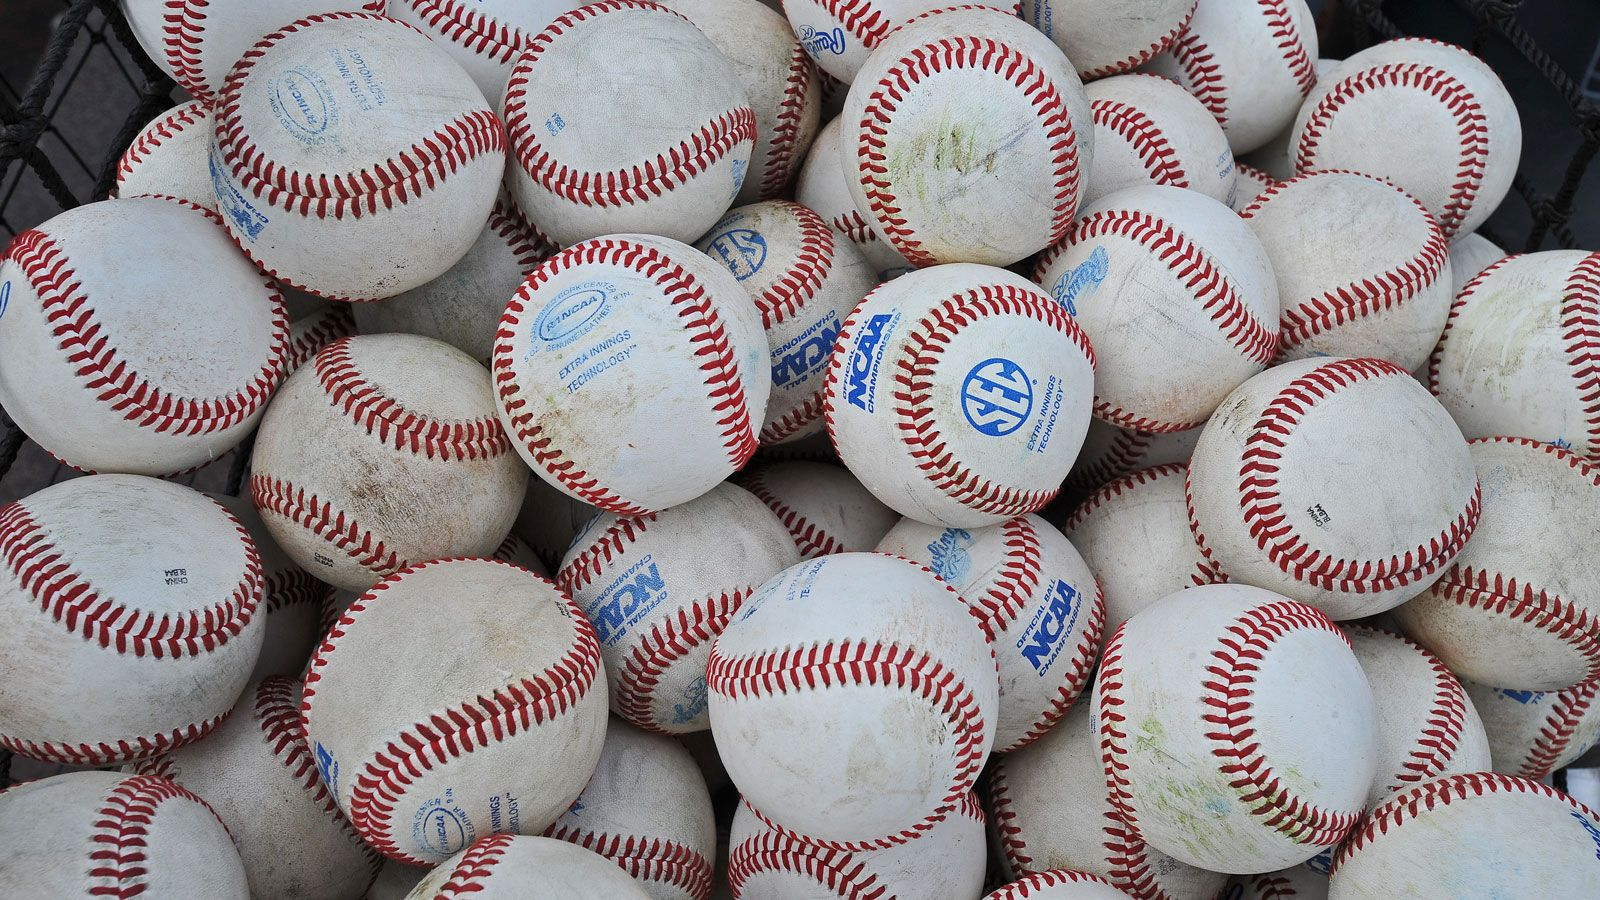 SEC Implements Centralized Video Review for Baseball